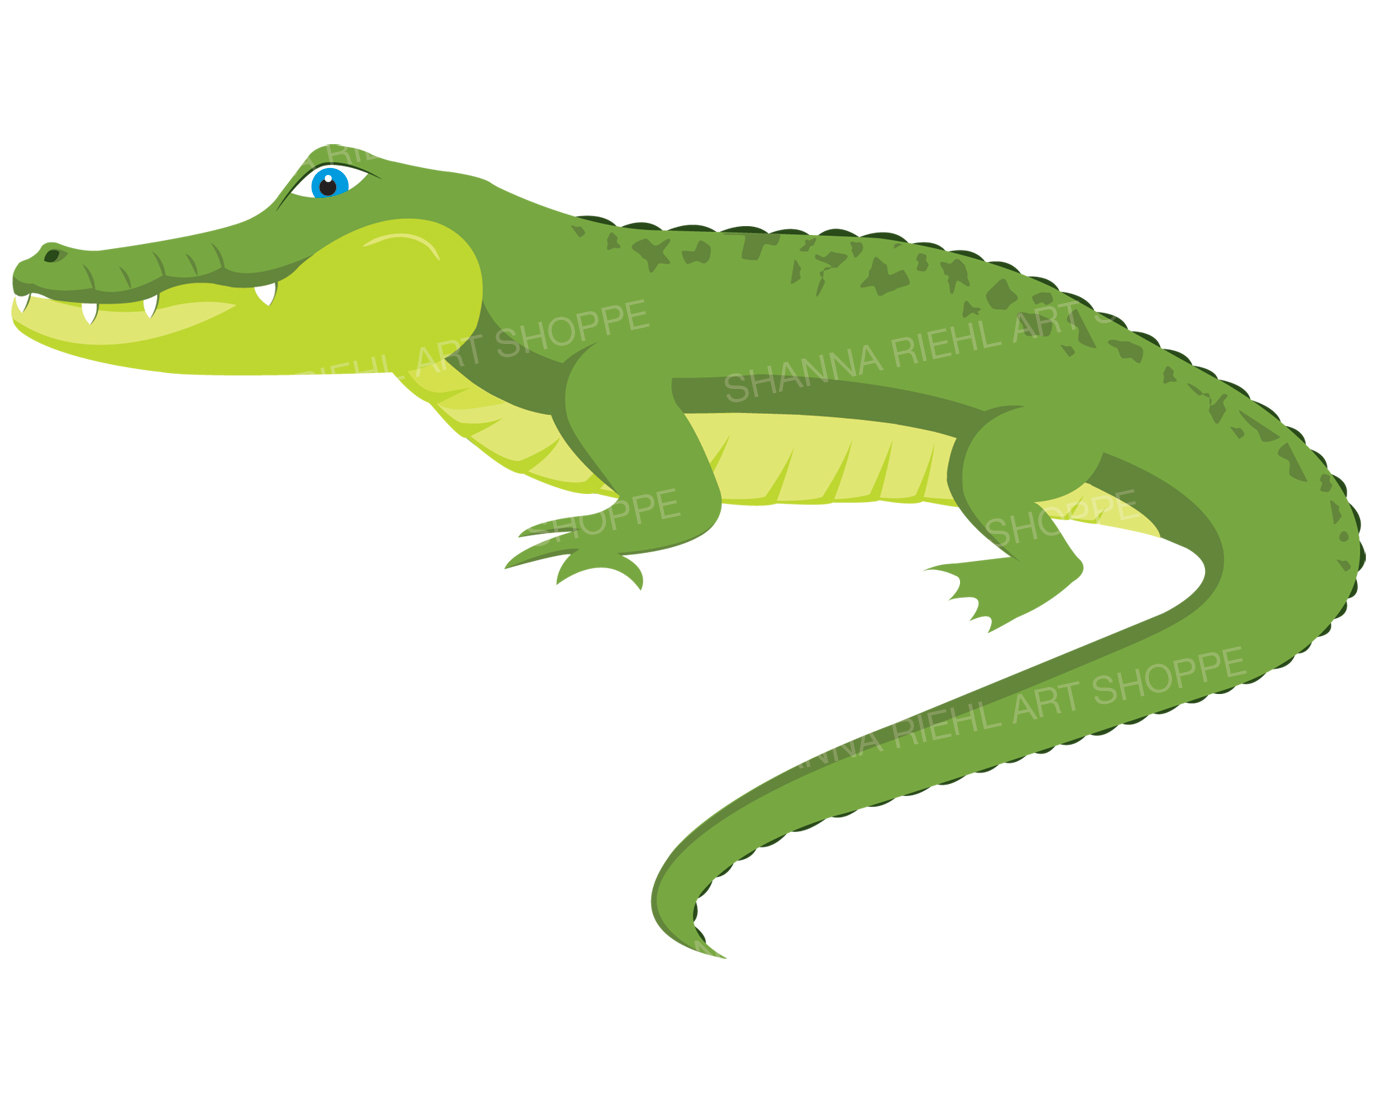 Alligator clipart heart Alligator Download Clipartner Crocodile Printable